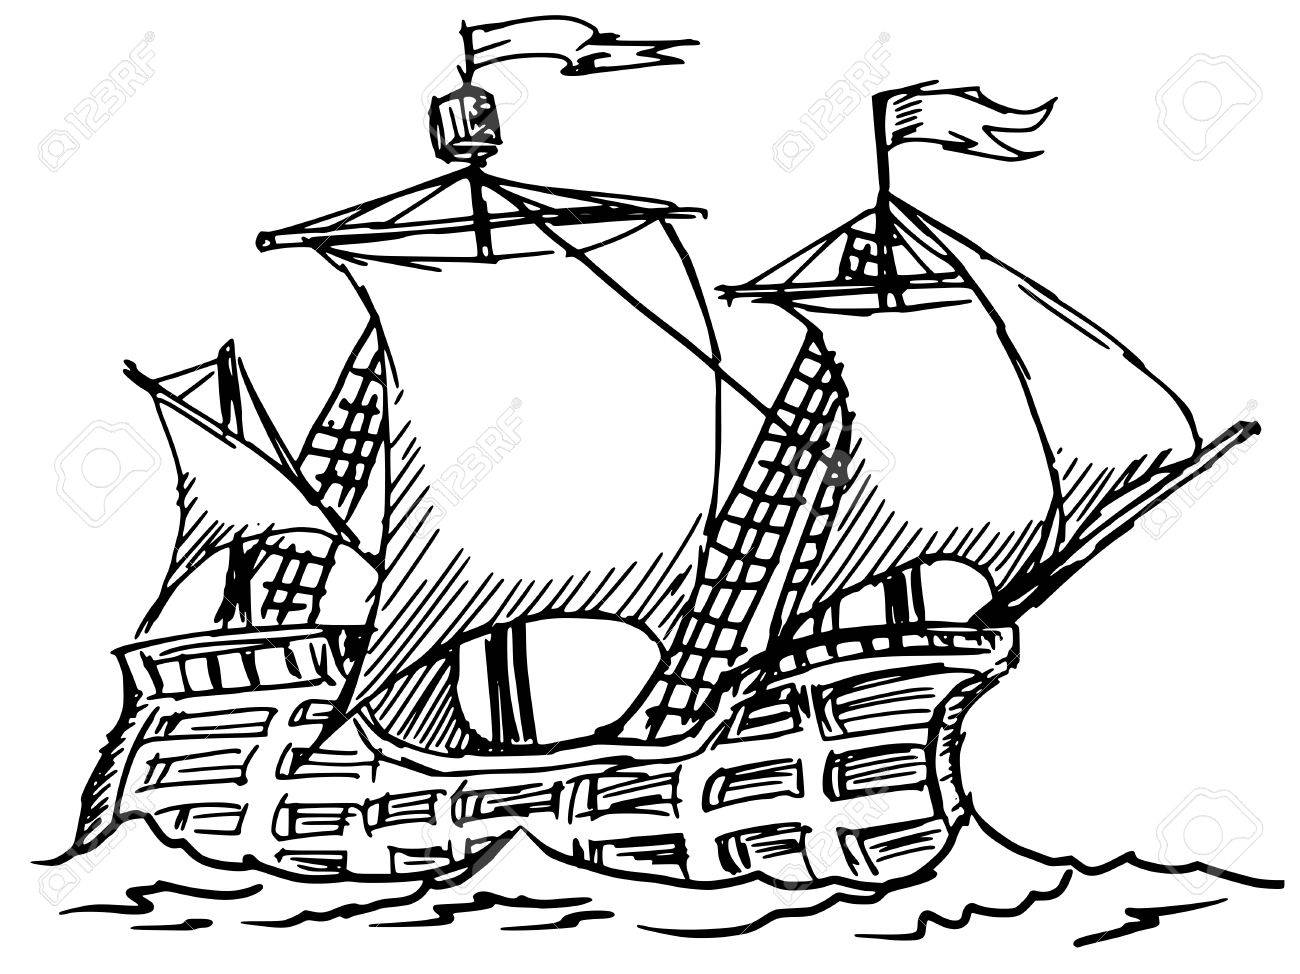 1300x974 Hand Drawn, Sketch Illustration Of Caravel Royalty Free Cliparts